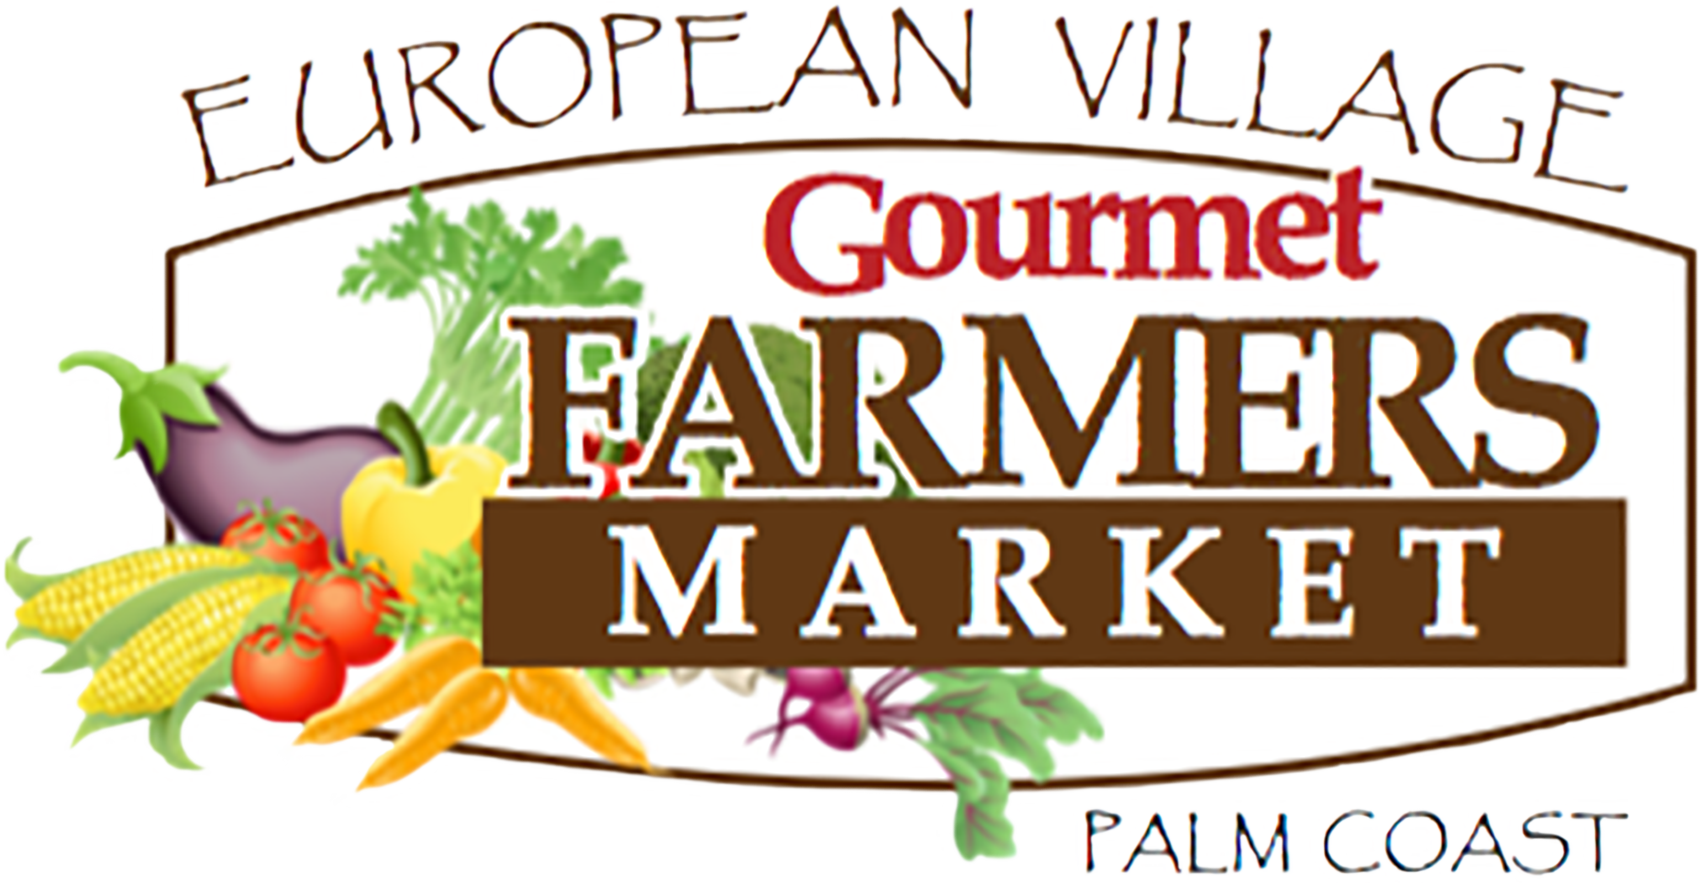 Gourmet Farmers Market at The European Village logo